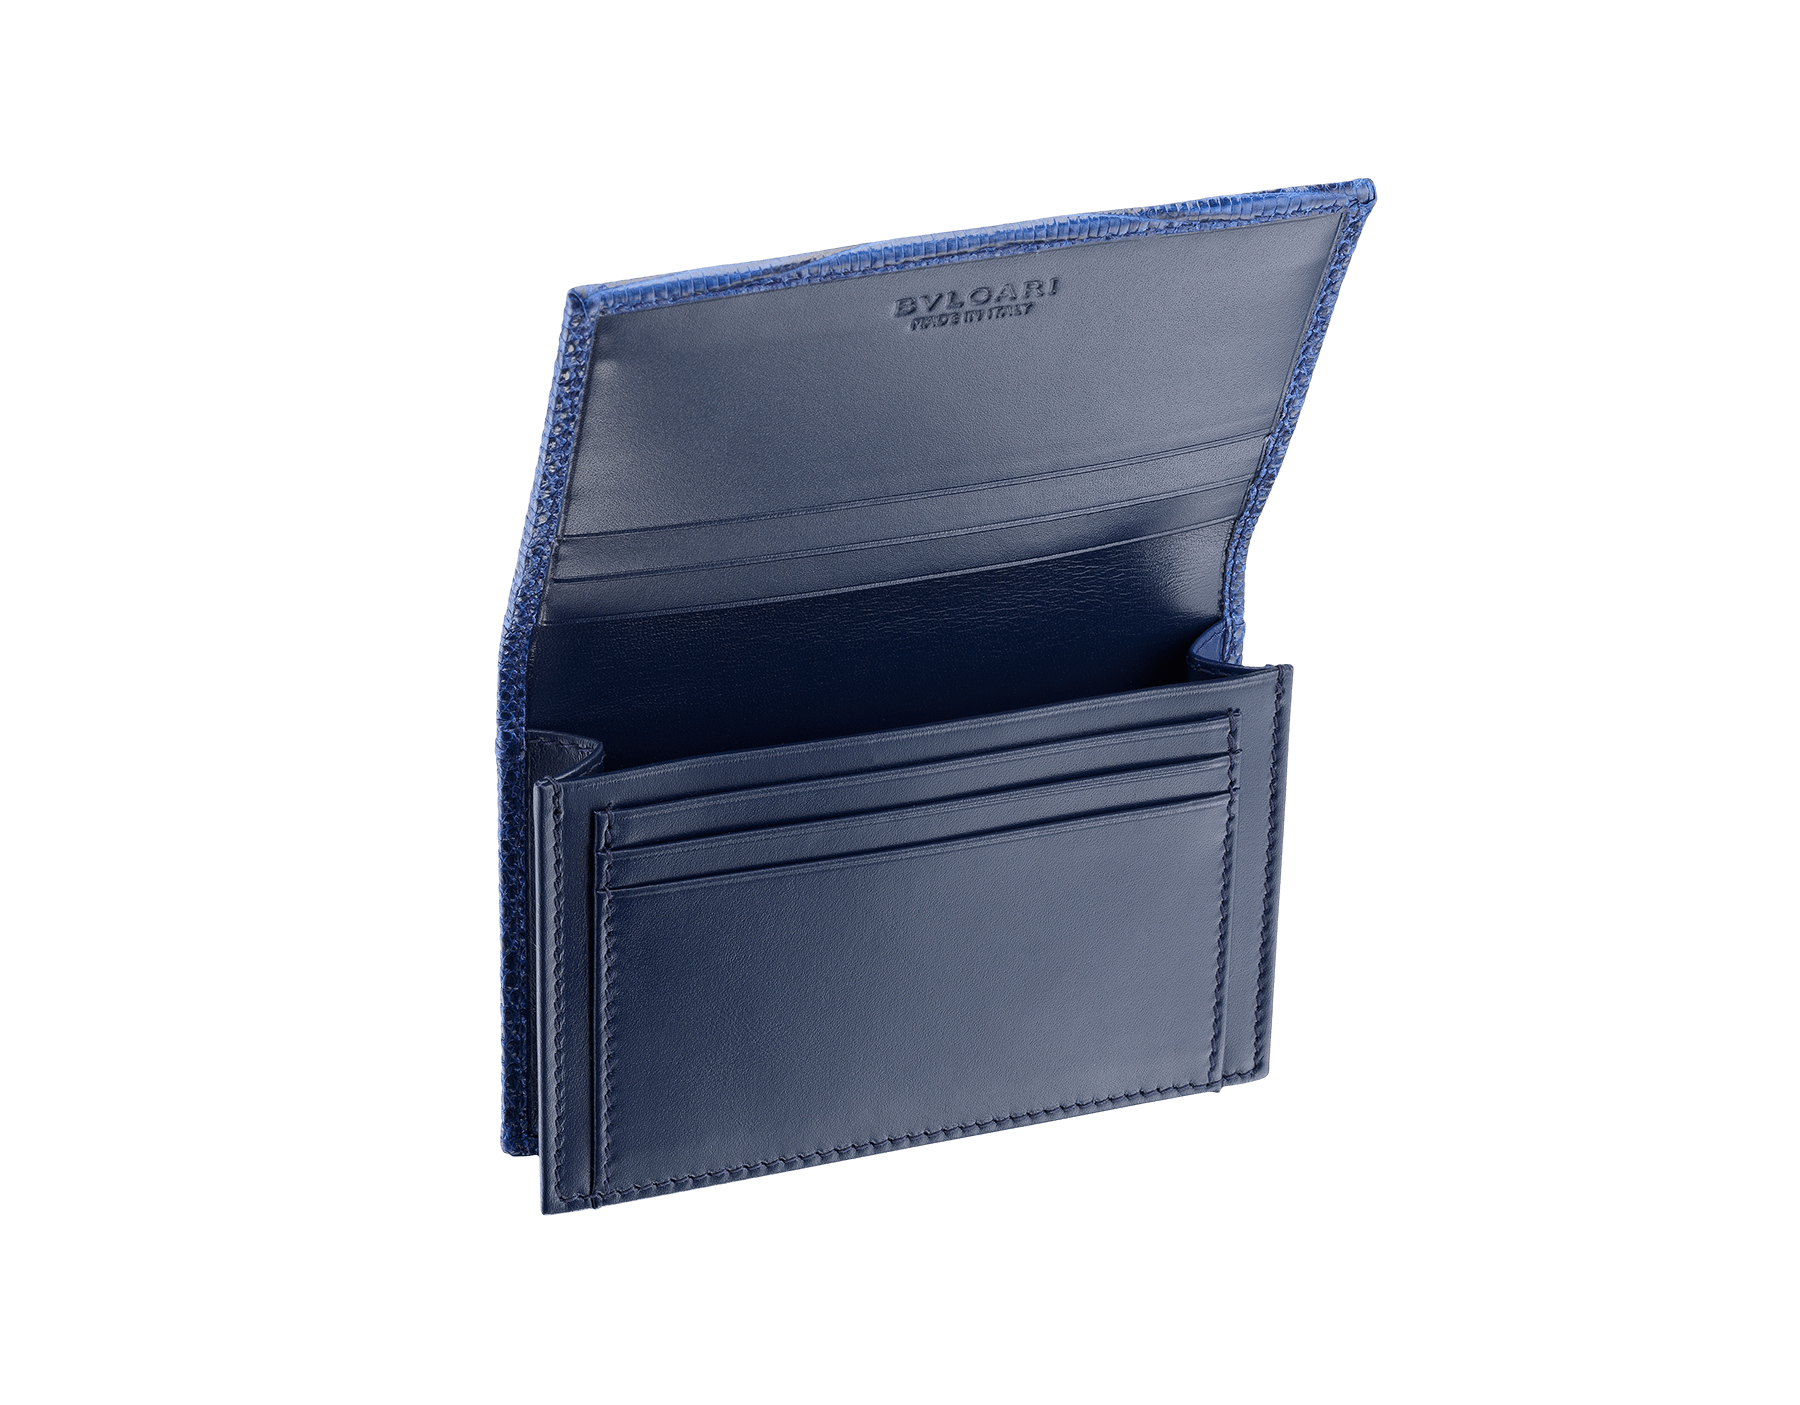 Business card holder in denim sapphire shiny lizard skin and calf leather with brass palladium plated BVLGARI BVLGARI motif. Three credit card slots, one open pocket and Business cards compartment. BBM-BC-HOLD-SIMPLE-sl image 2